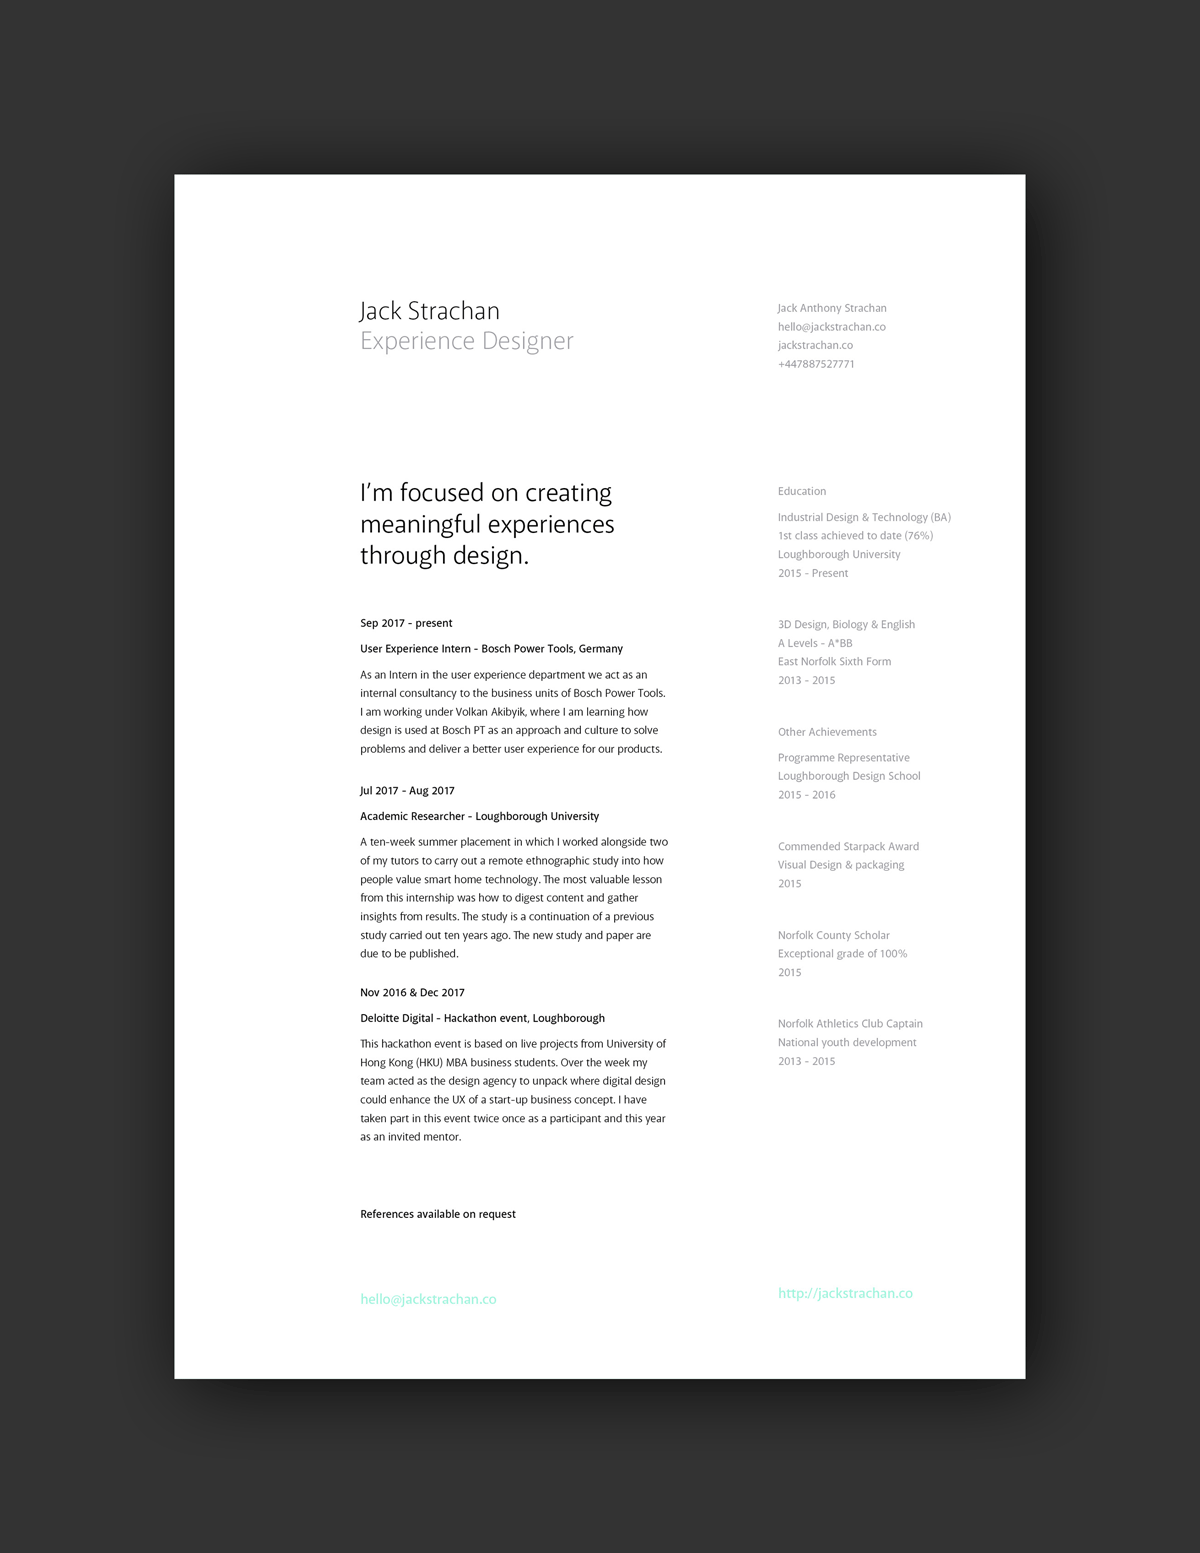 21 Inspiring Ux Designer Resumes And Why They Work Graphic Design Resume Graphic Design Cv Resume Design